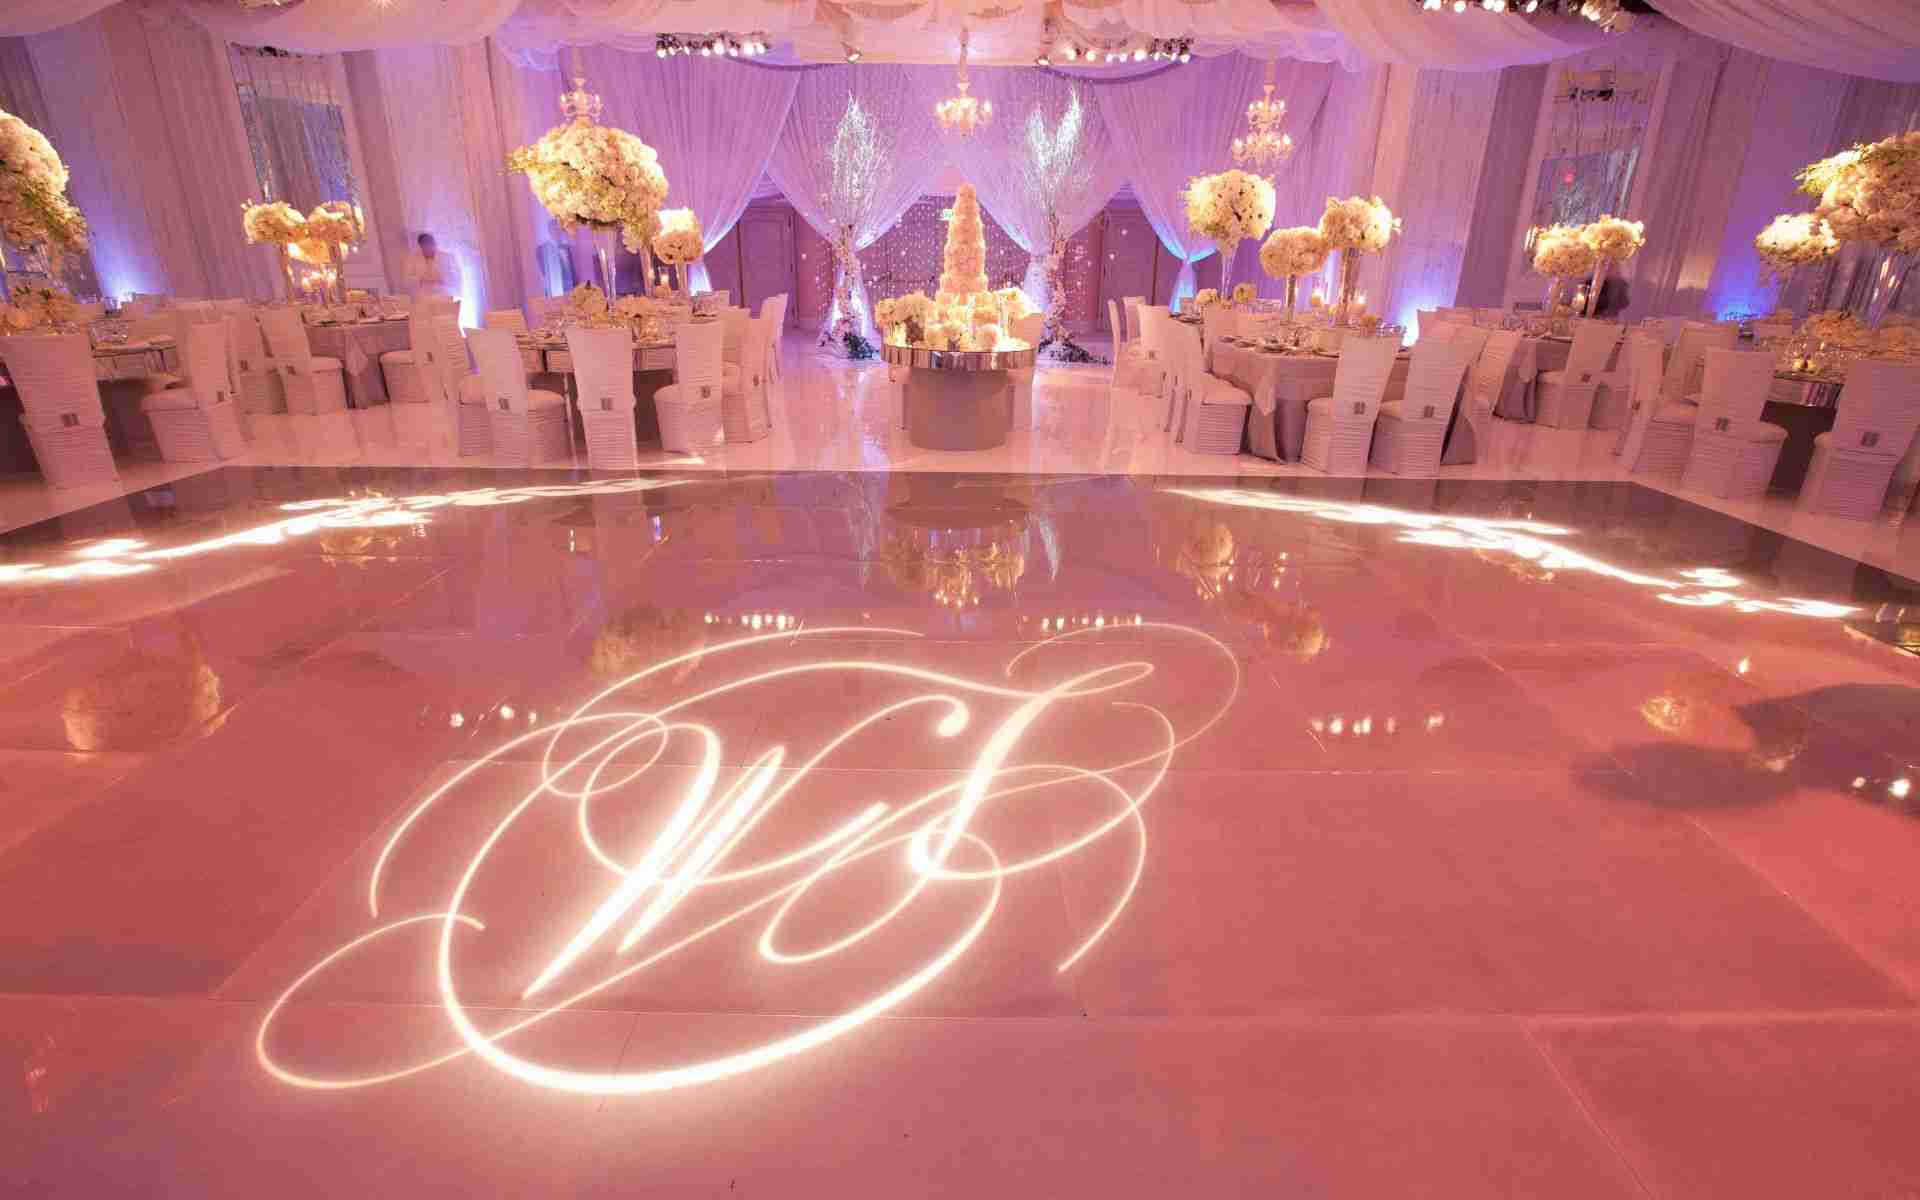 Savannah GA Wedding-Uplight Example_Monogram Example_Lavender